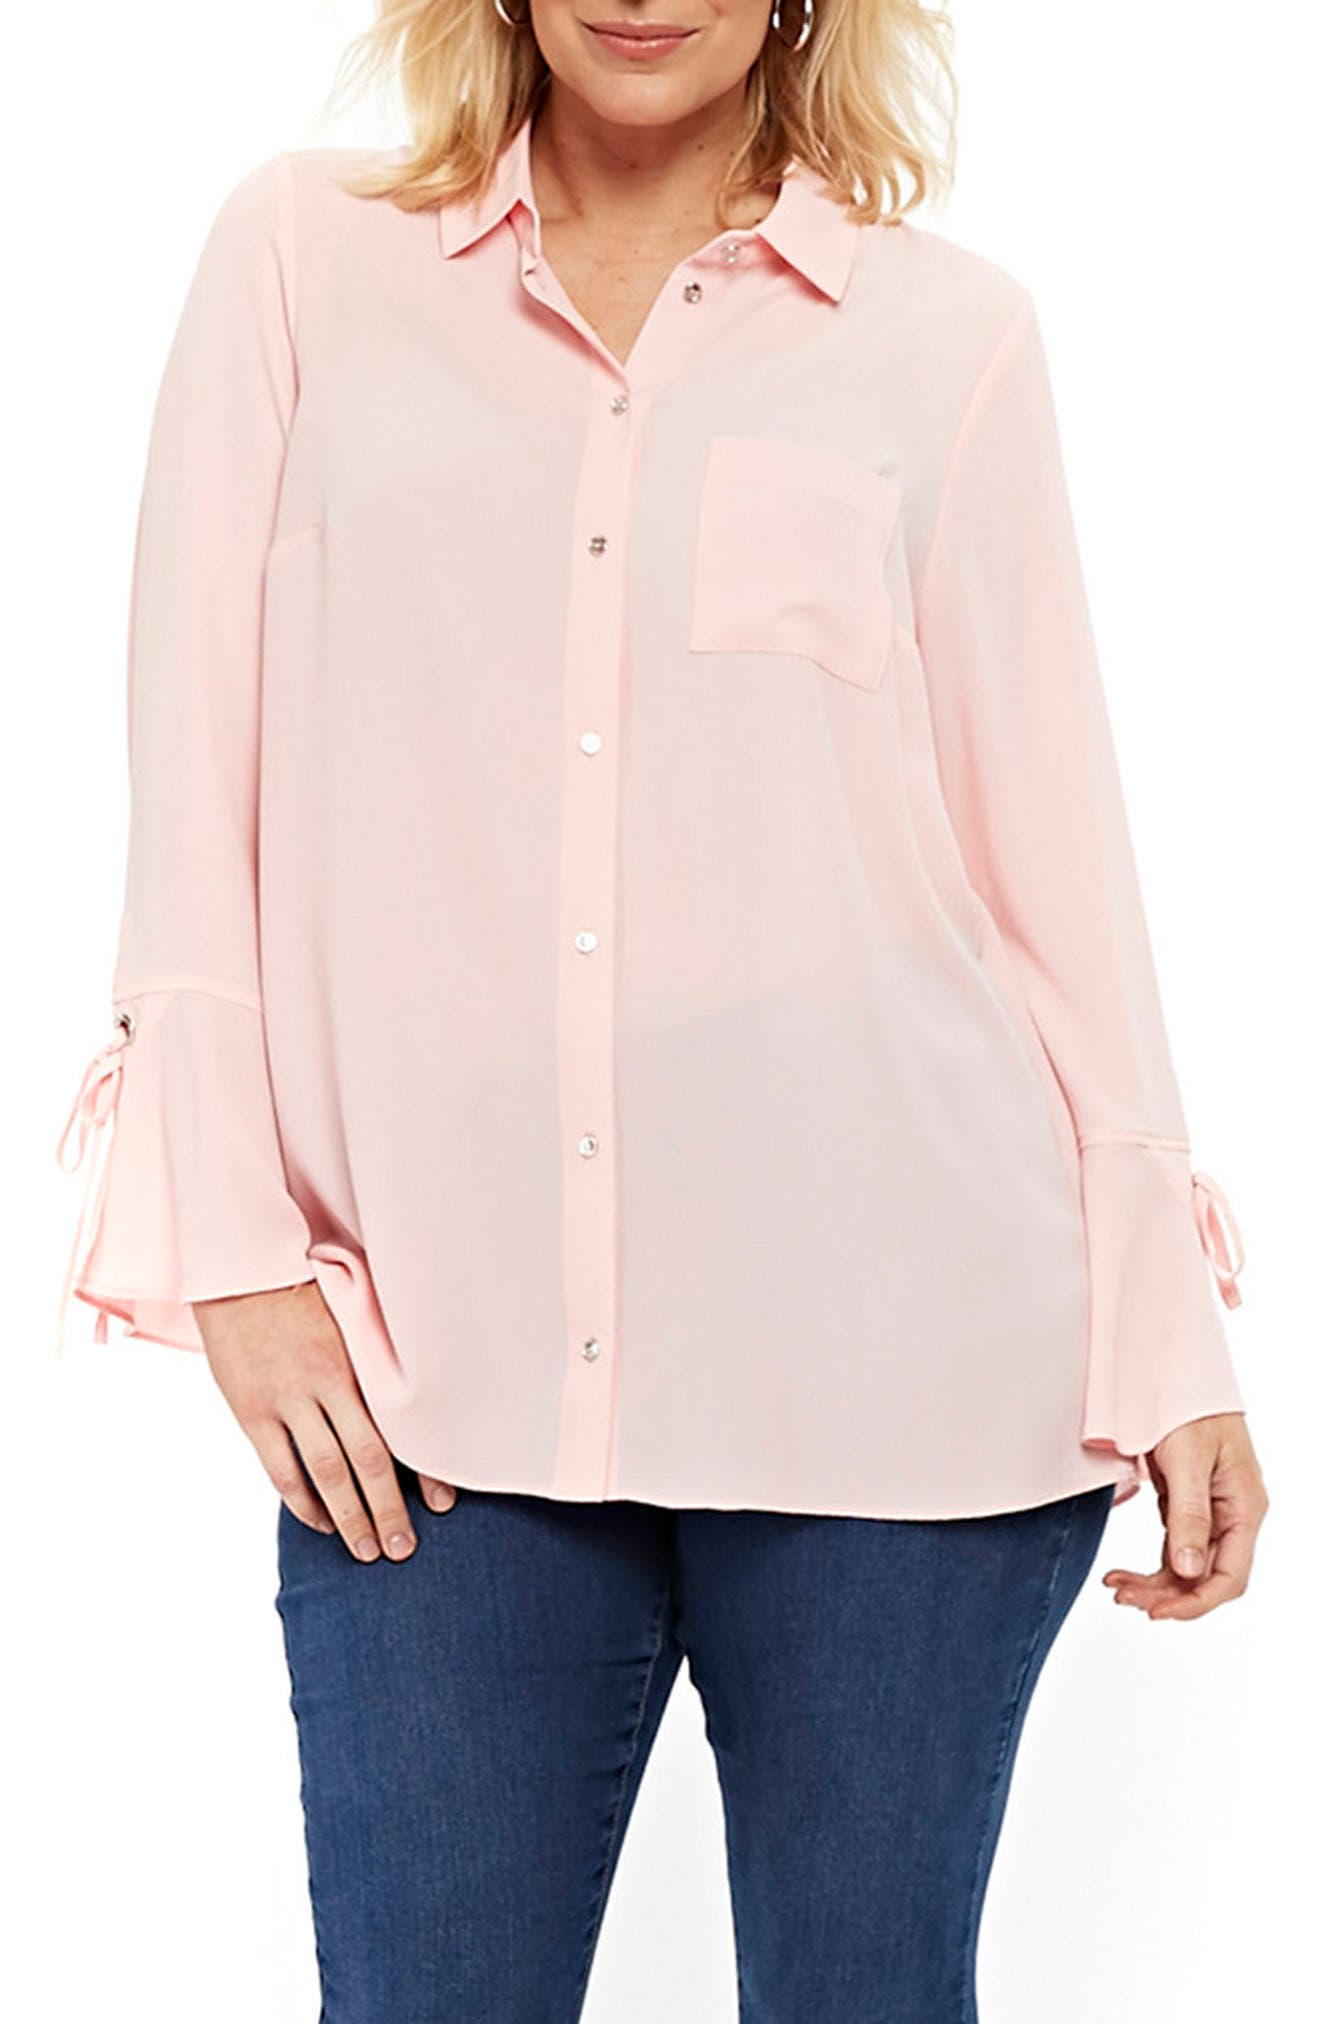 Lace-Up Cuff Shirt,                         Main,                         color, Pale Pink